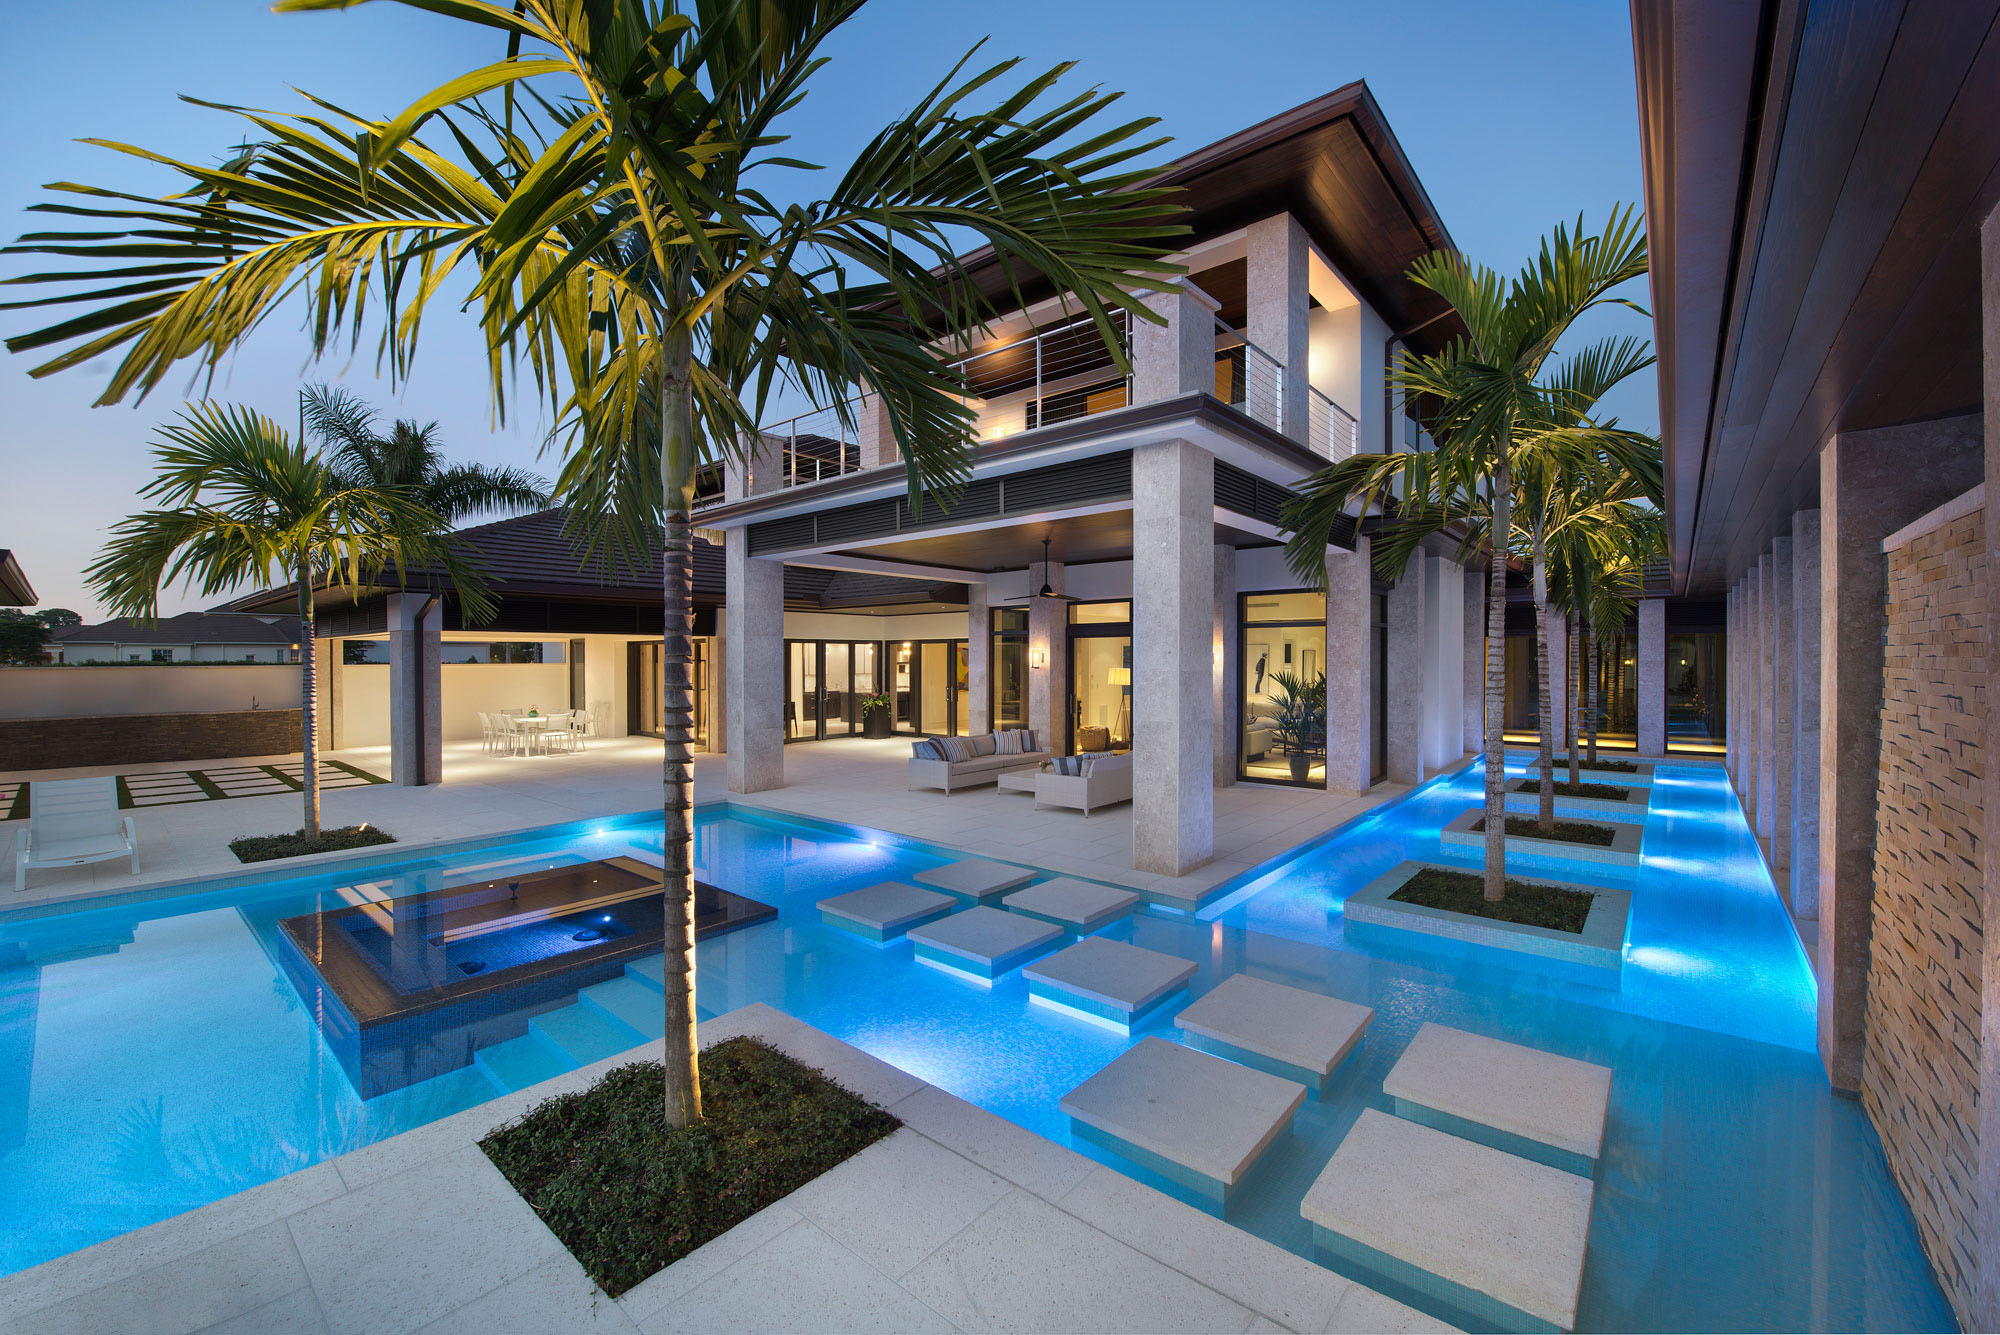 Custom dream home in florida with elegant swimming pool for Interior pool house designs